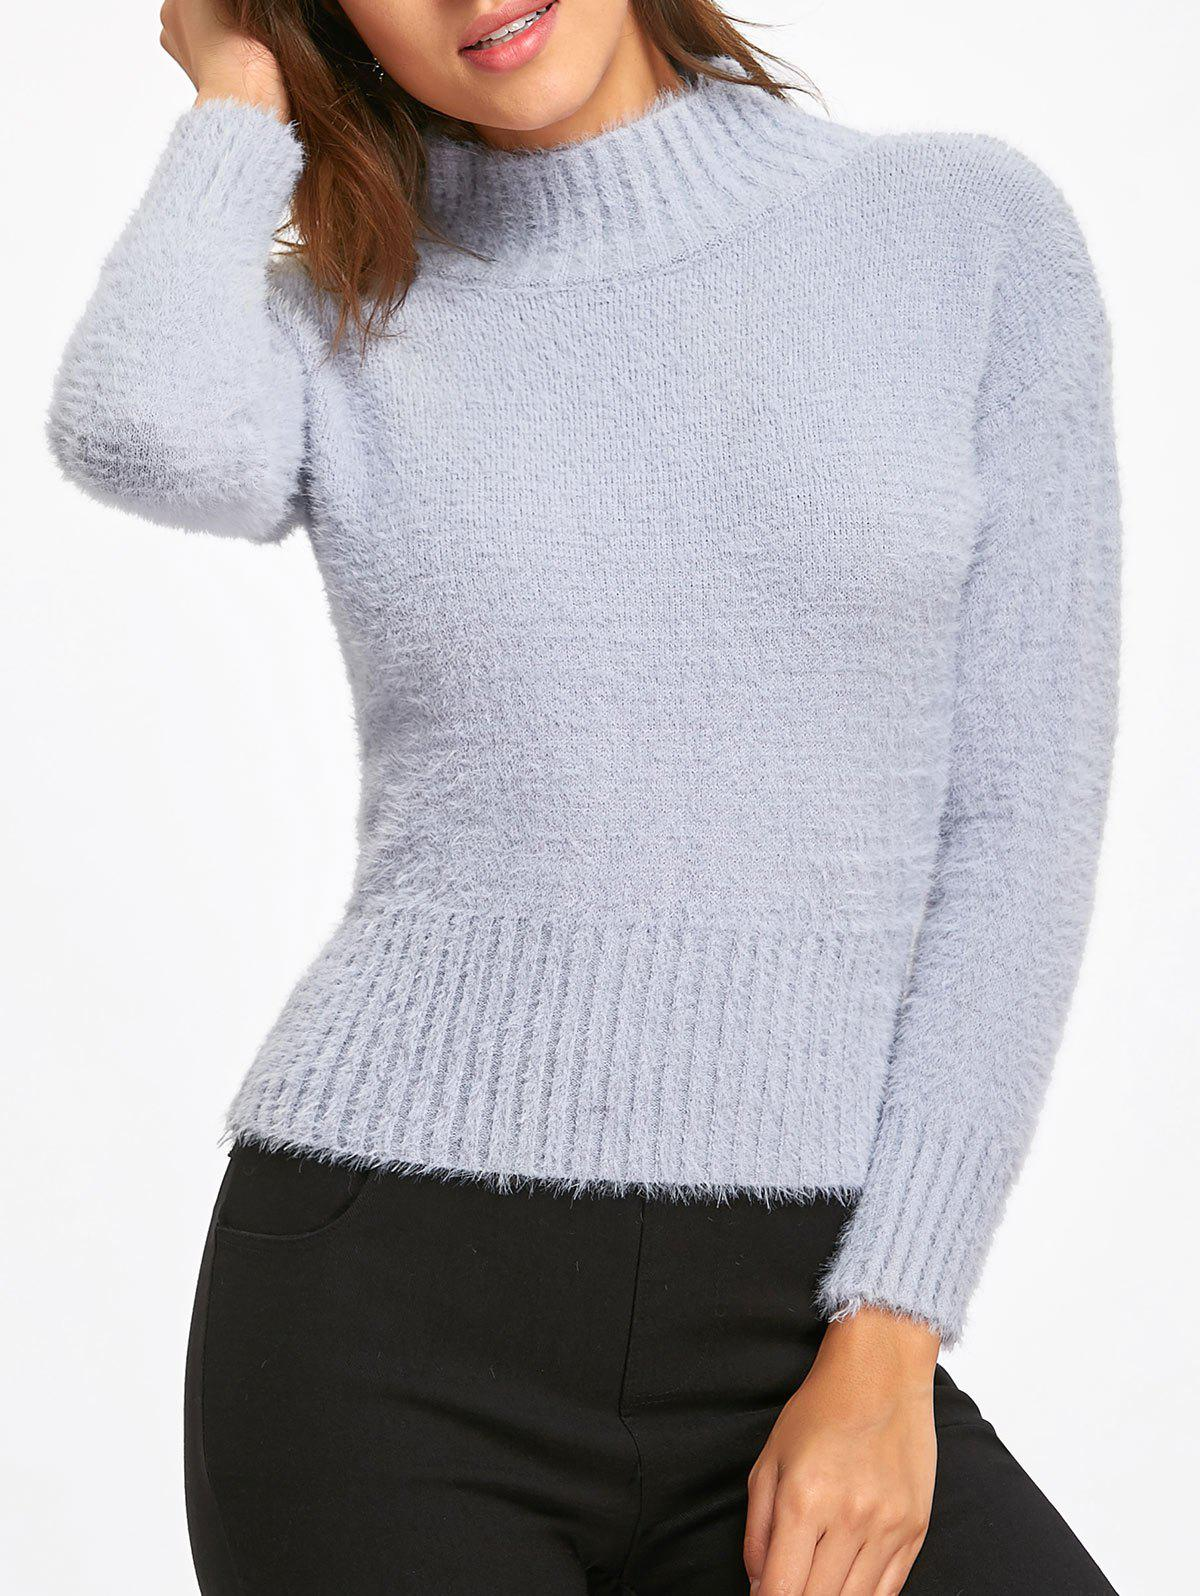 Furry Dropped Shoulder Mock Neck Sweater enn vetemaa möbiuse leht teine raamat page 7